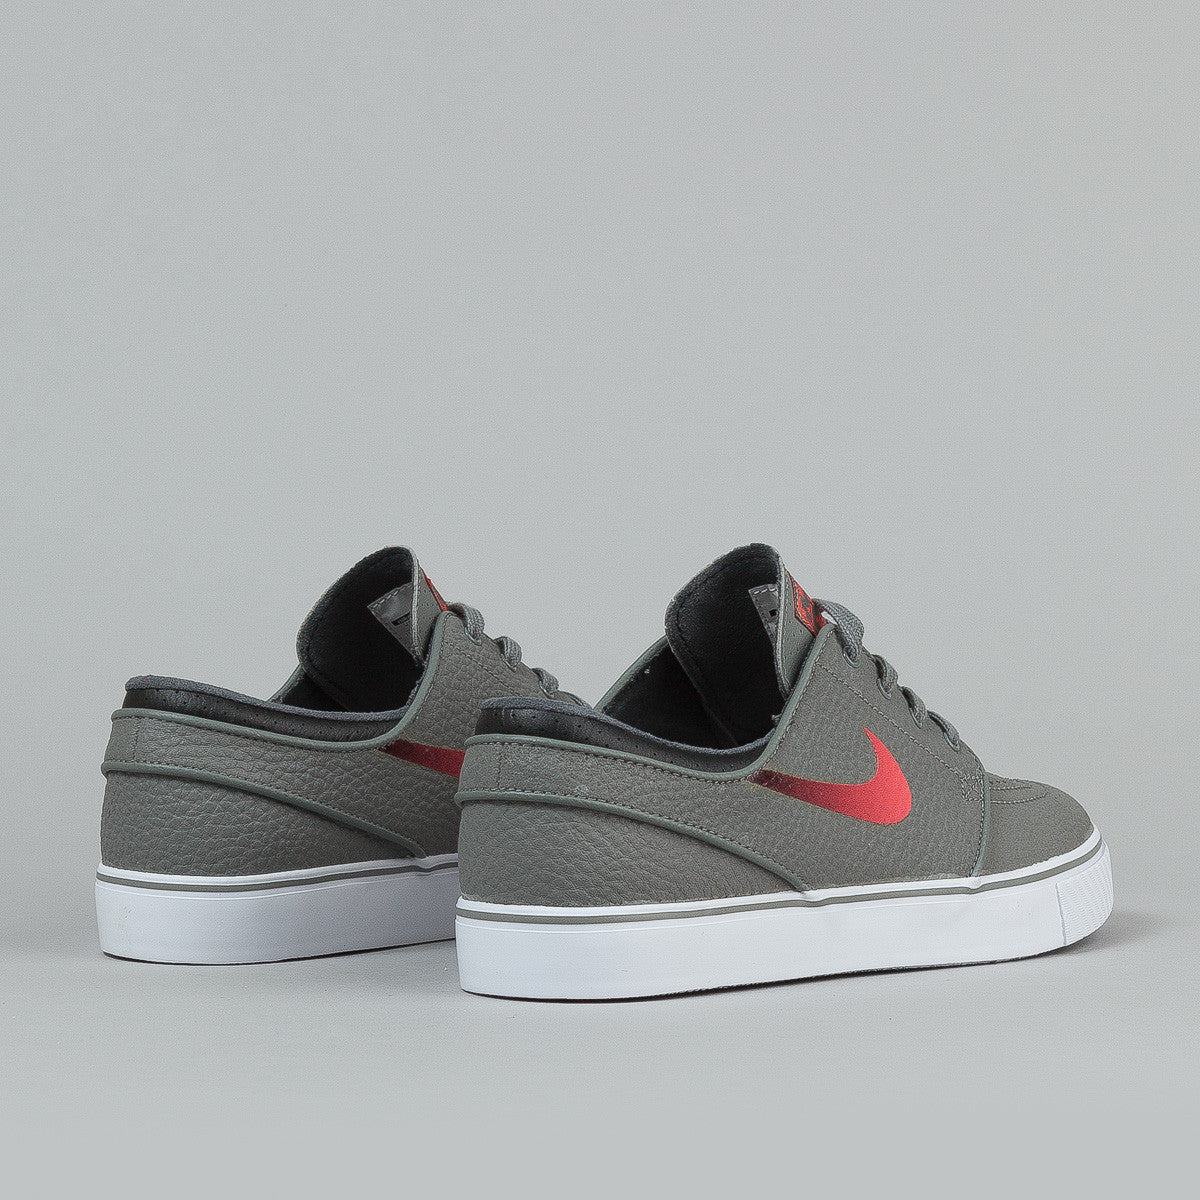 Nike SB Stefan Janoski L Medium Base Grey / Laser Crimson - Black